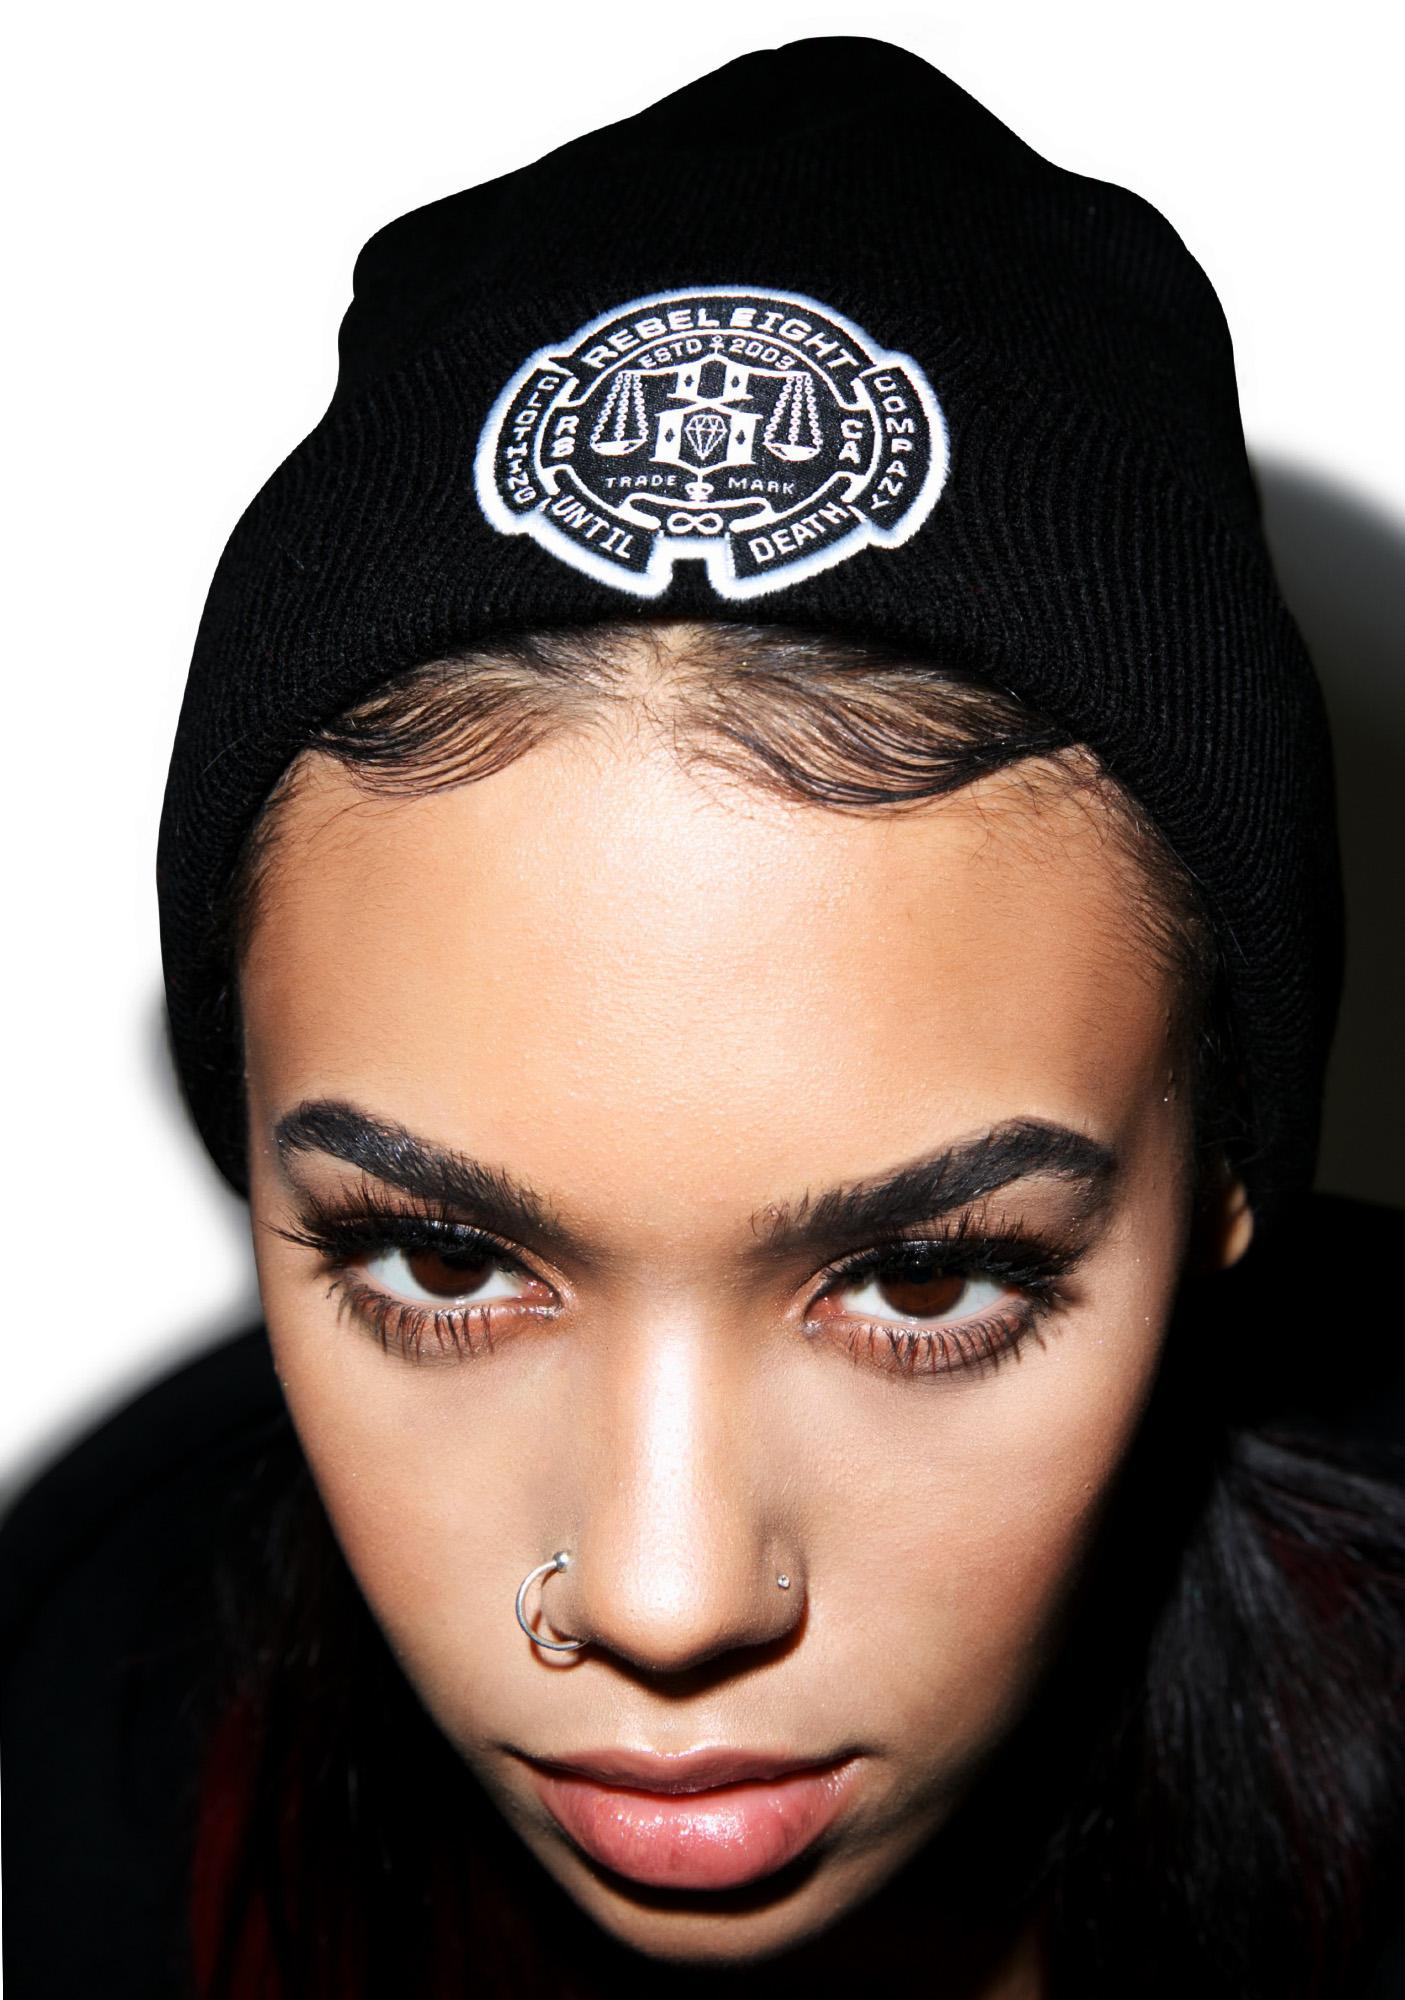 Rebel8 Until Death Cuffed Beanie